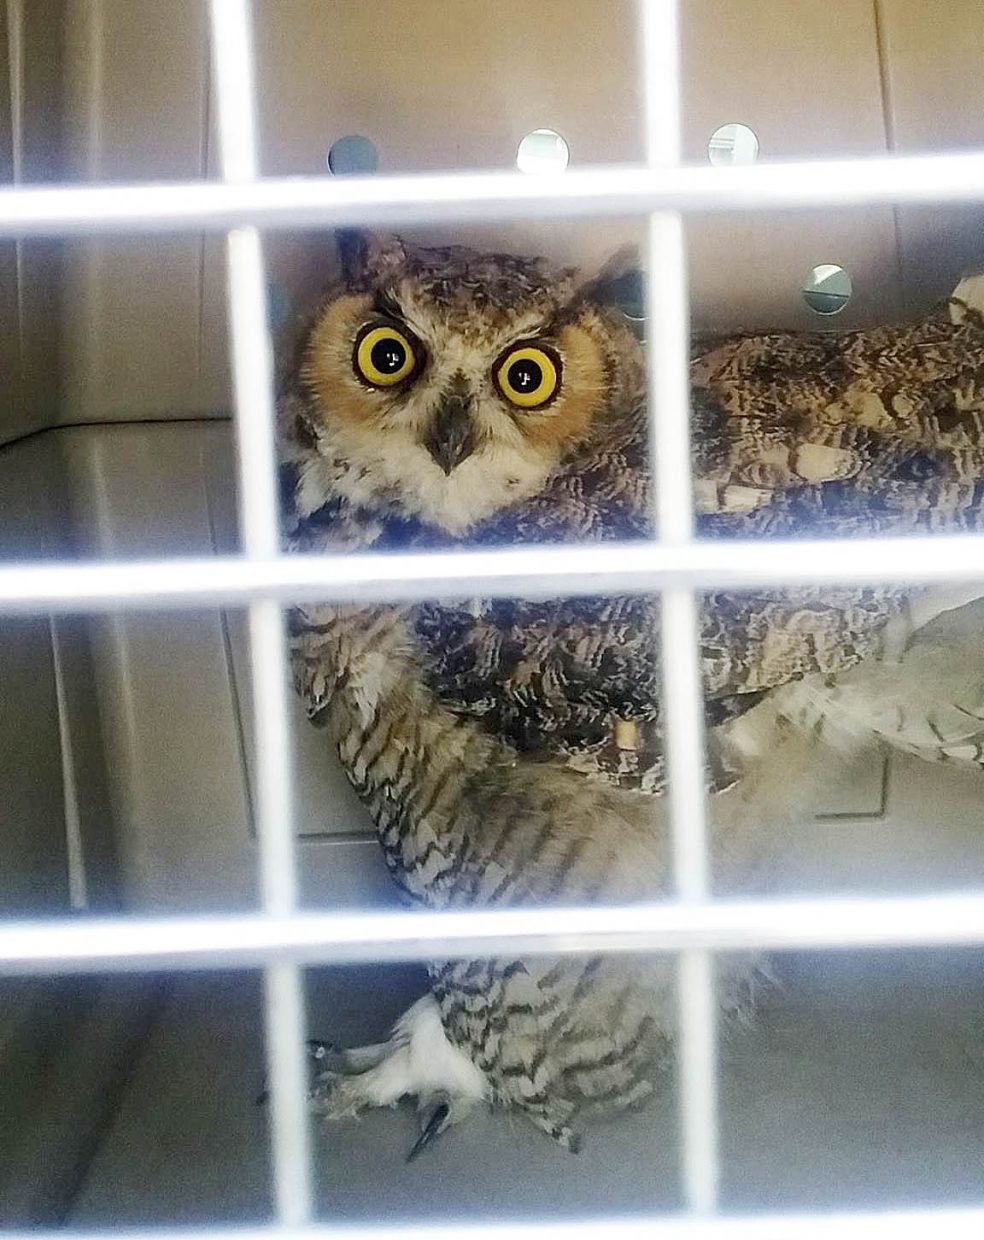 Hayden Animal Control officer Meredith Murray and Hayden Police Chief Greg Tuliszewski rescued an owl Tuesday that injured itself after flying into the Routt County Fairgrounds grandstand.